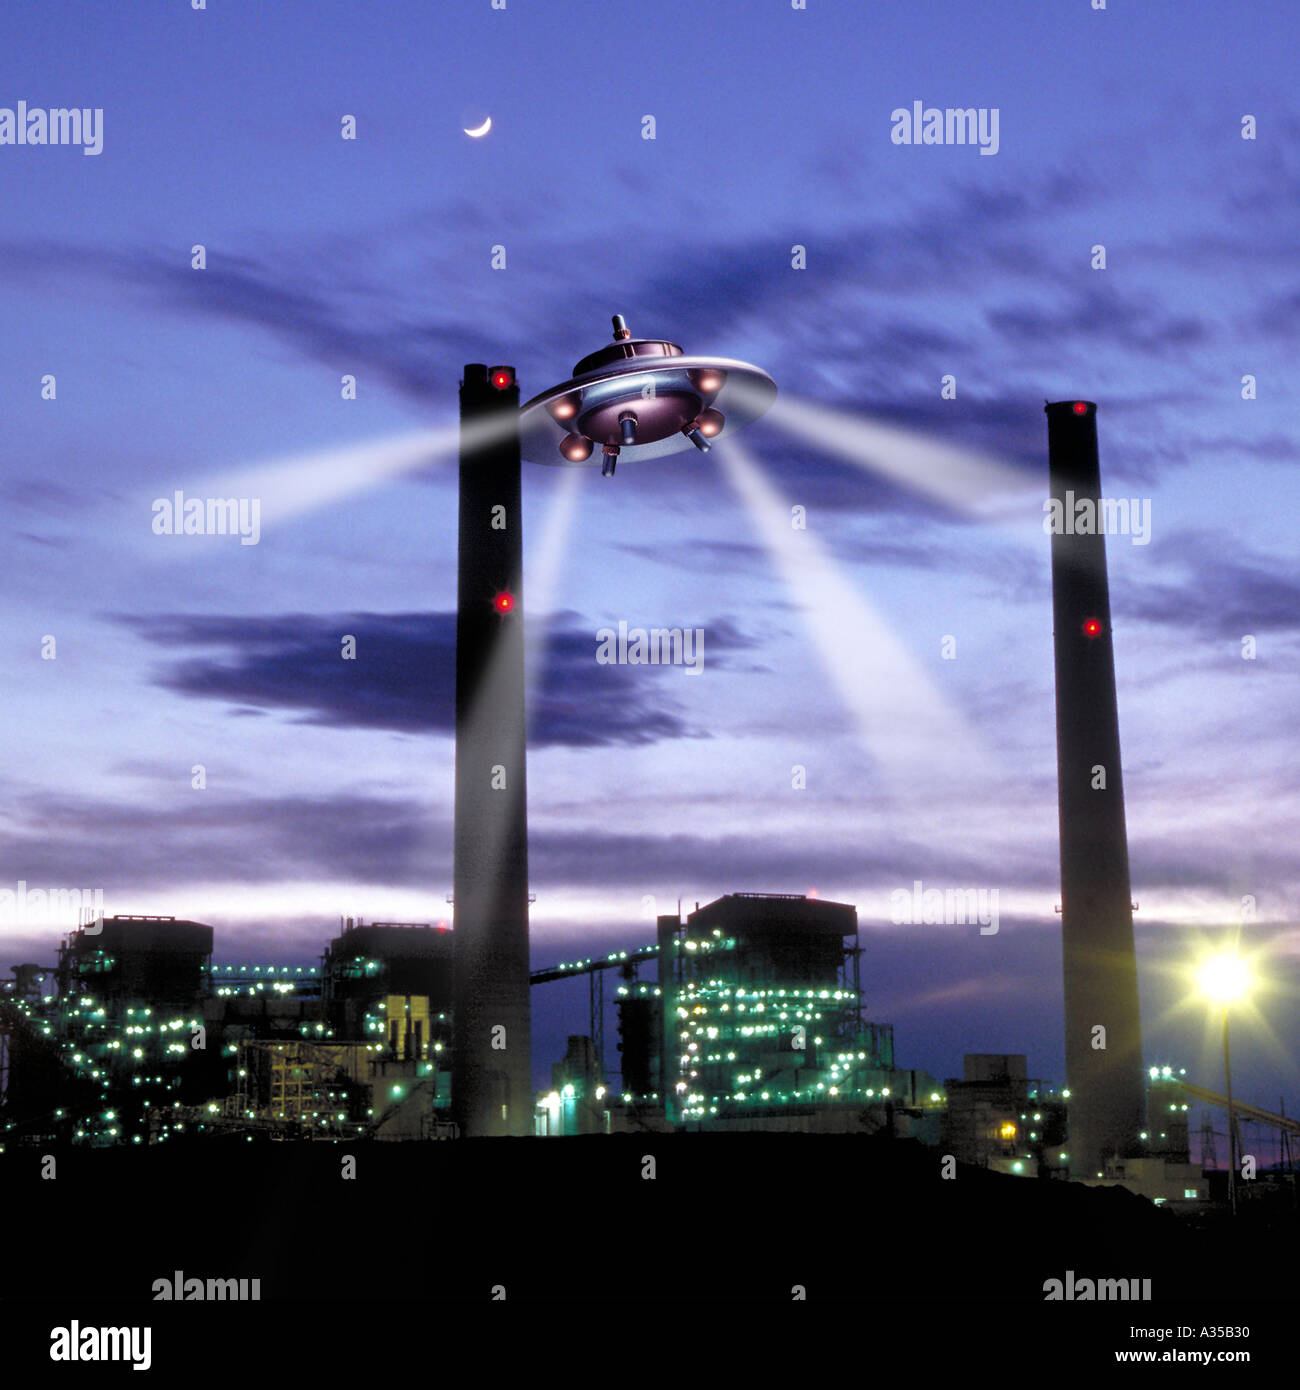 UFO over Power Plant - Stock Image